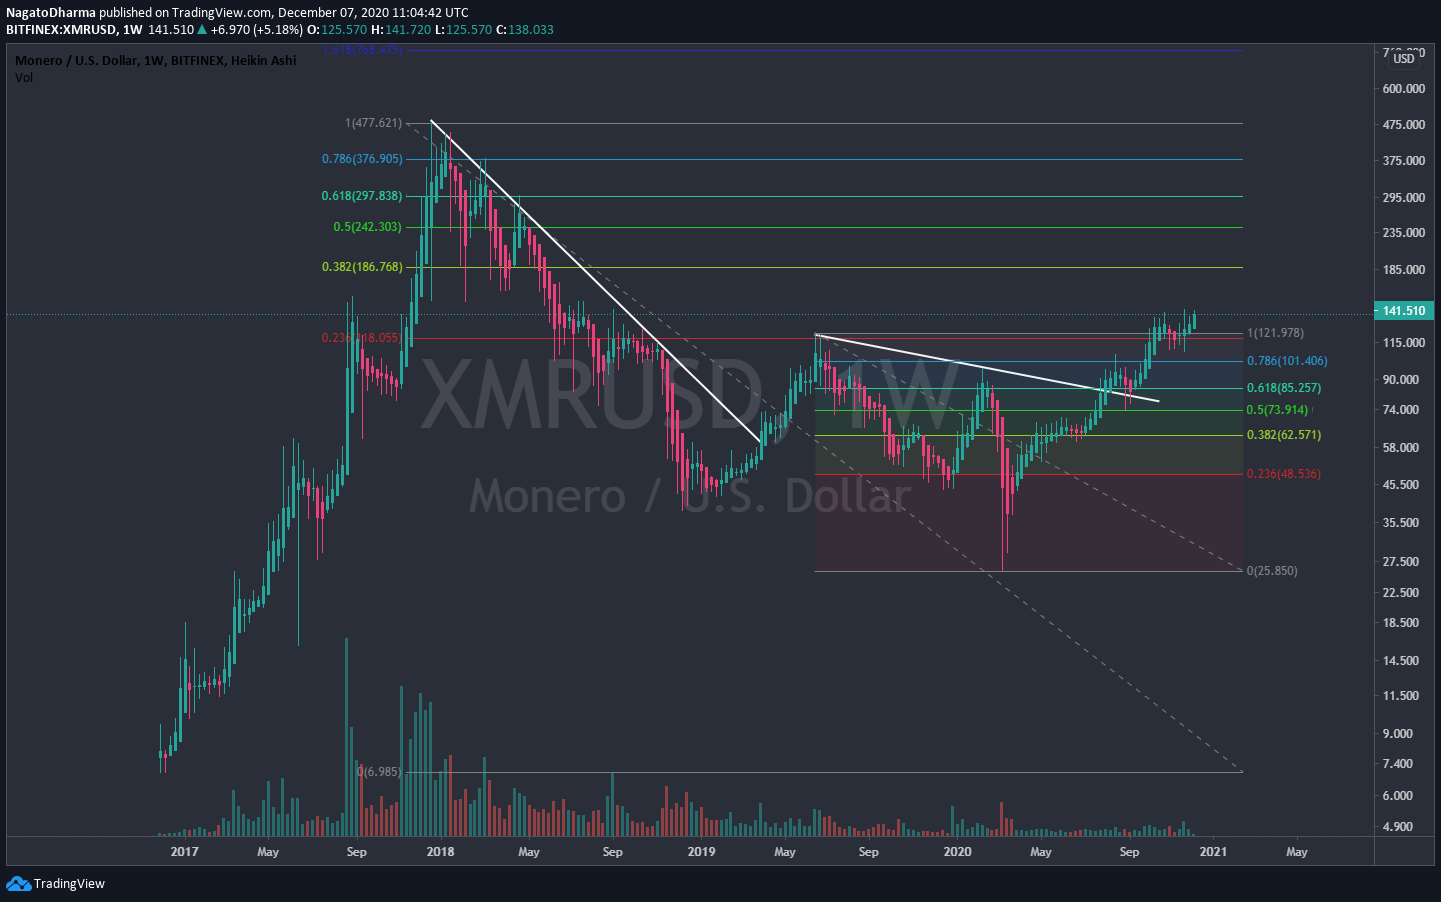 XMR Long-Term movement